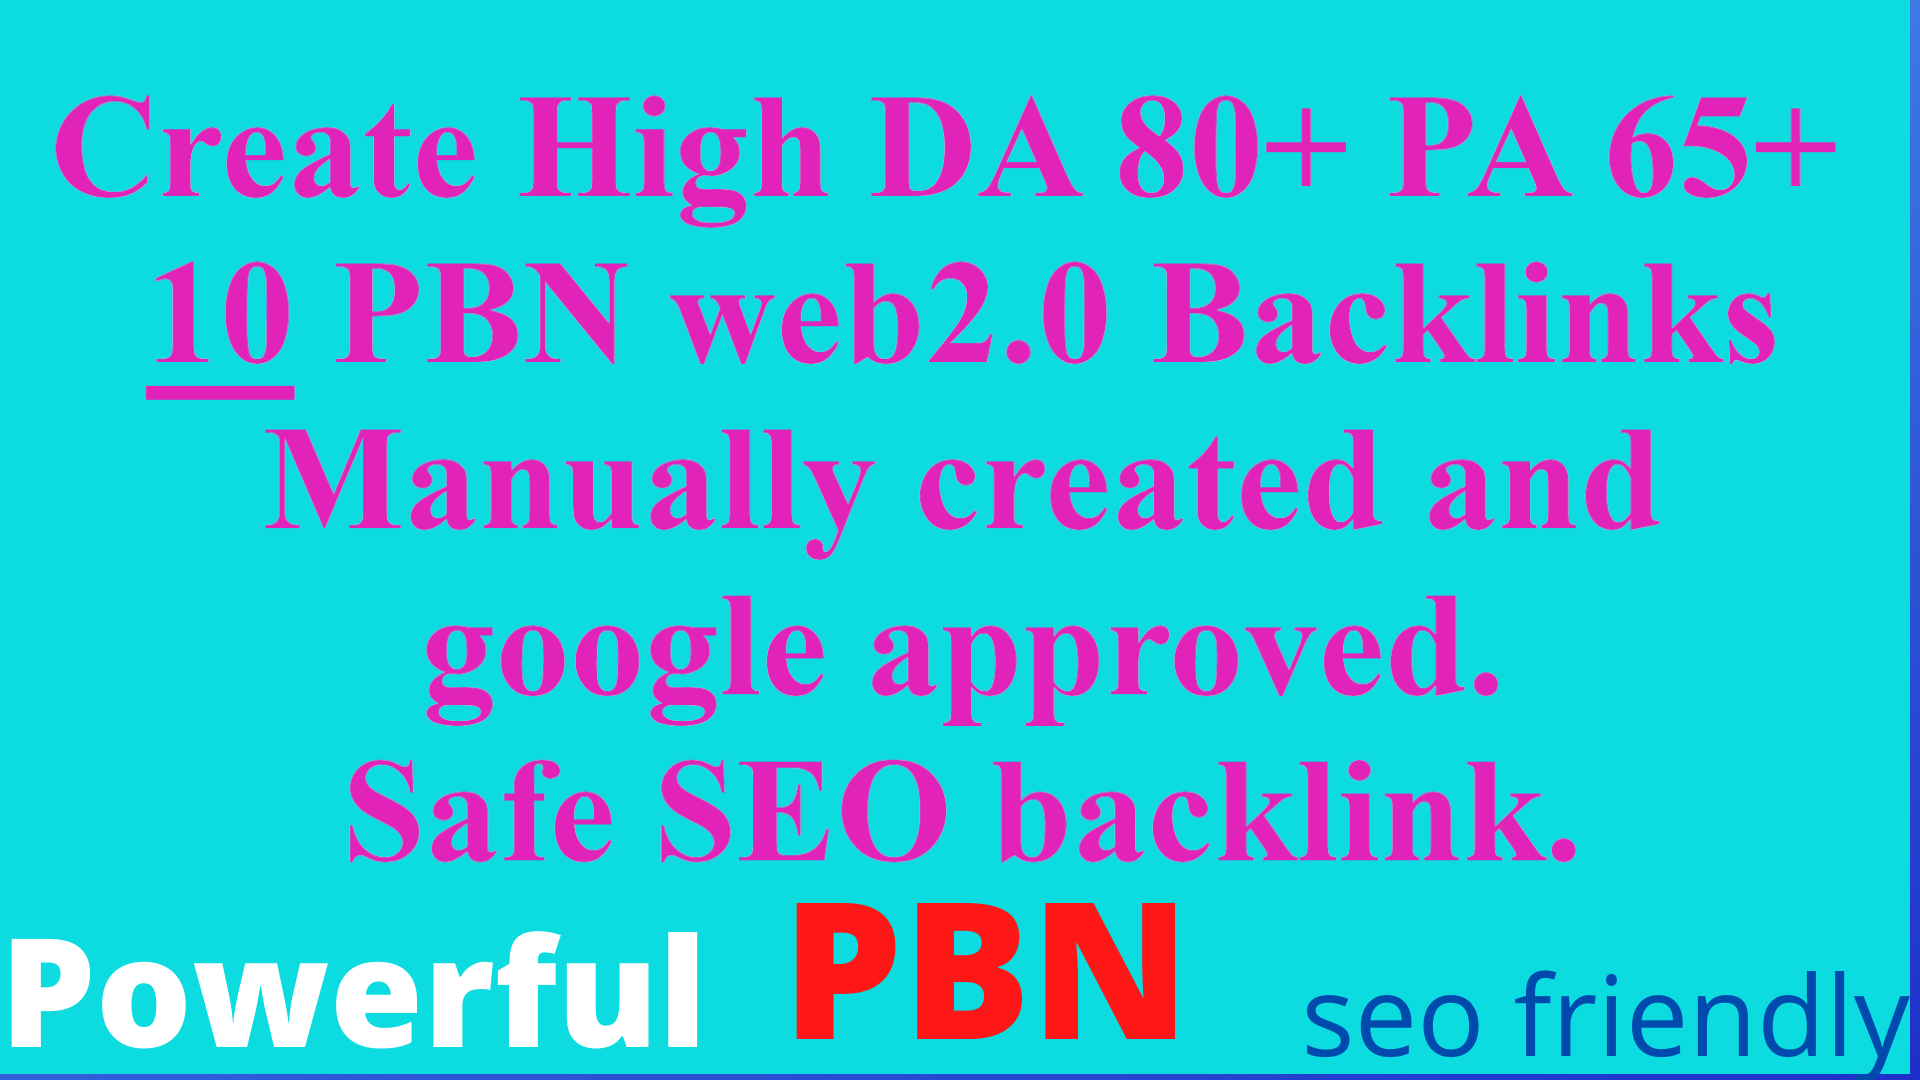 we will build Web 2.0 10 PBN Unique Sites DA 80+ PA 65+